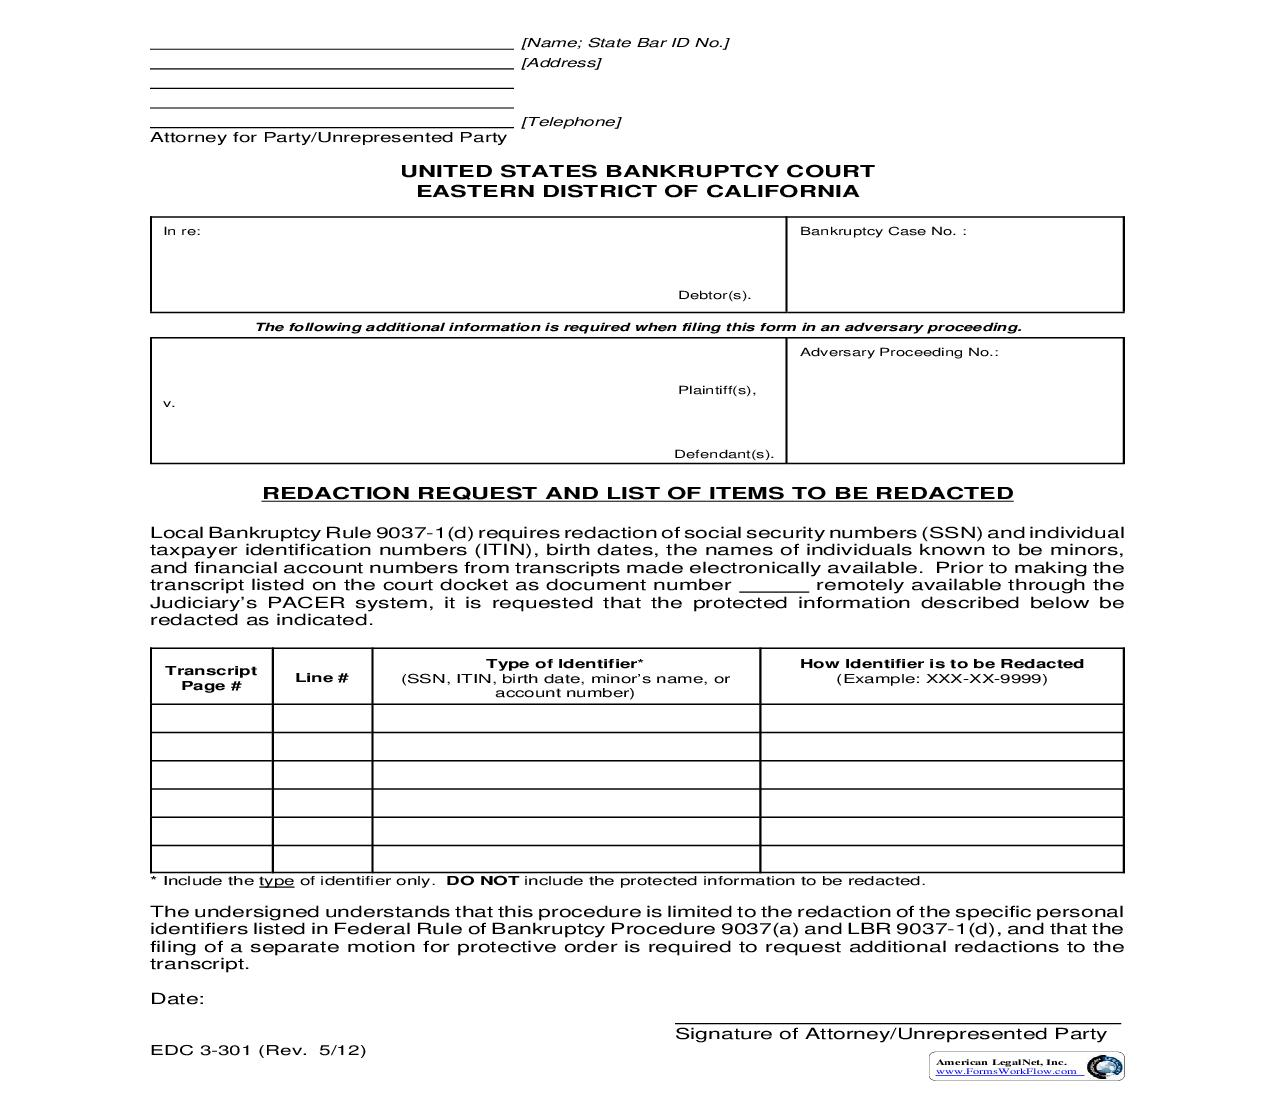 Request For Redaction And List Of List Of Items To Be Redacted {EDC 3-301} | Pdf Fpdf Doc Docx | California